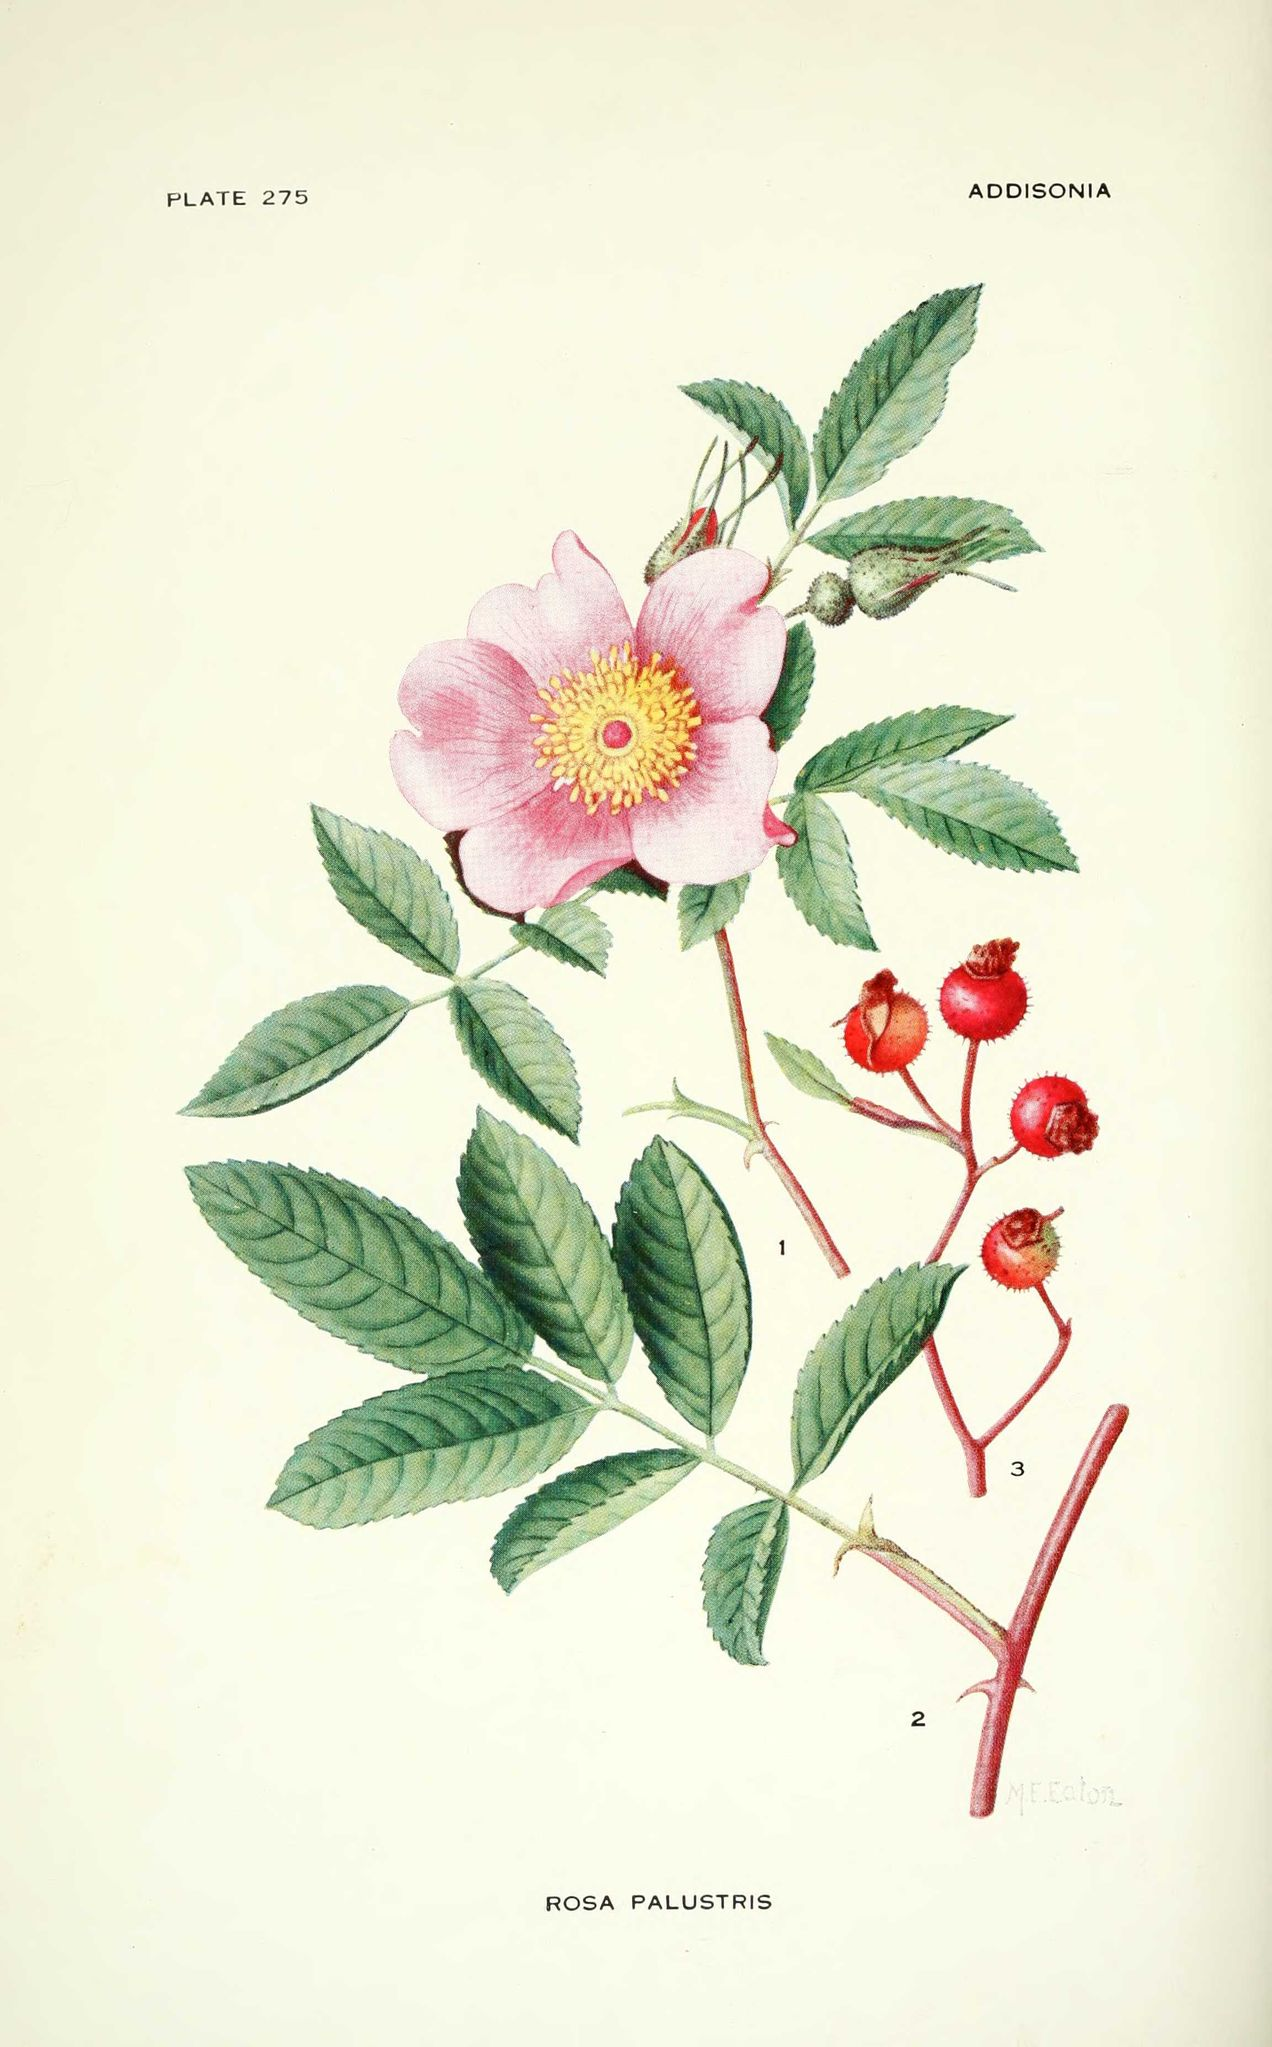 gravures fleurs Additiona - rosa palustris - rosier des marais